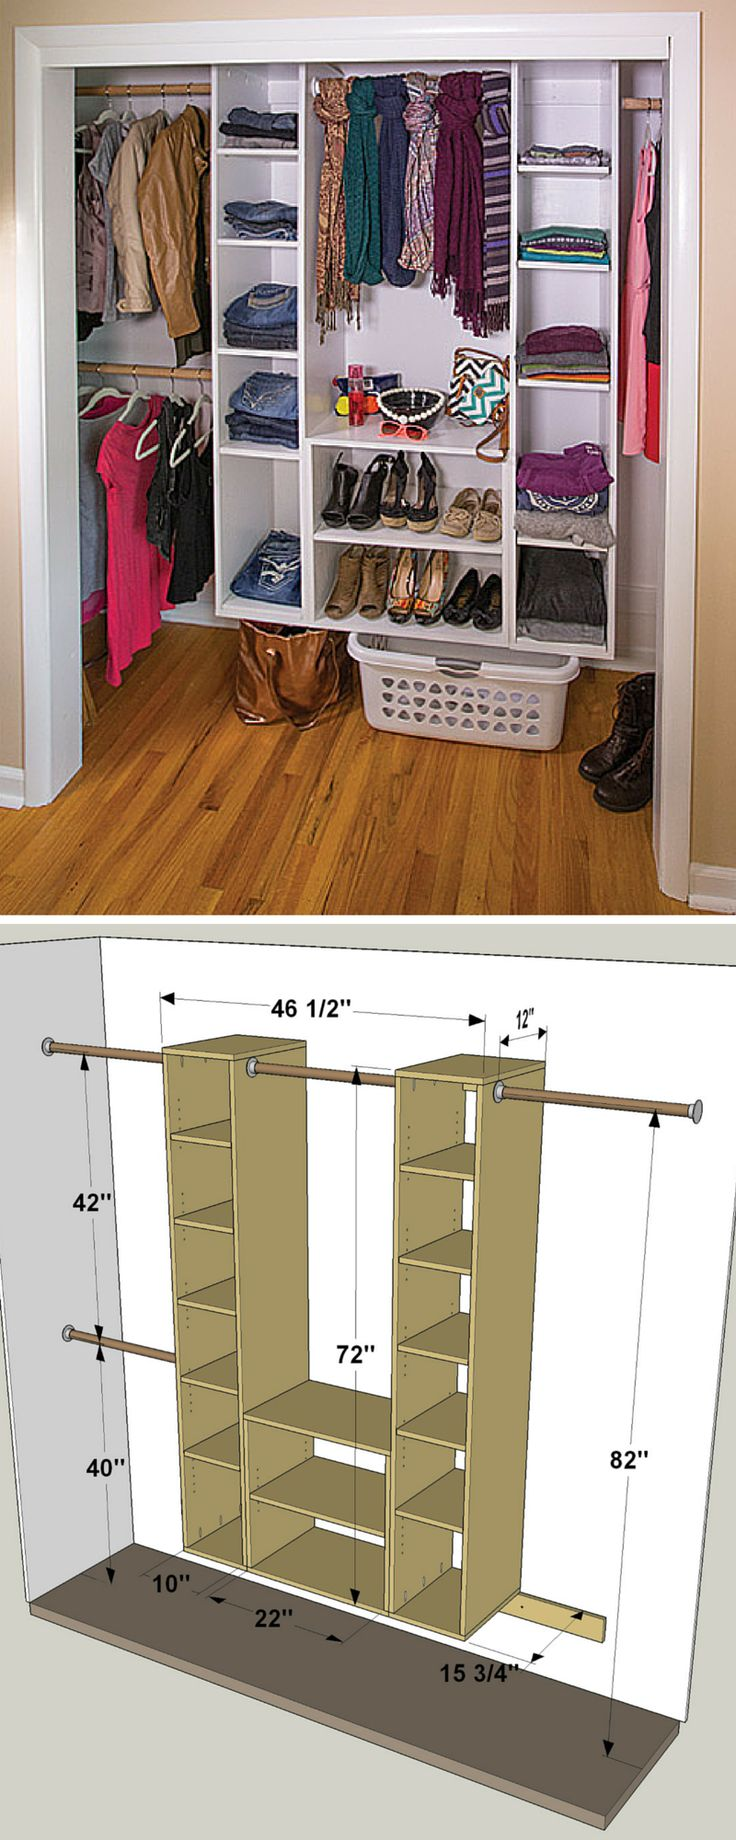 This organizer makes it easy to turn a chaotic closet into a clean, organized space. It's made up of a couple of basic pieces: Two towers with adjustable shelves, and wide cubby. You can build it as shown here or, because it's modular, arrange it in a different way to best suit your storage needs. FREE PLANS at buildsomething.com